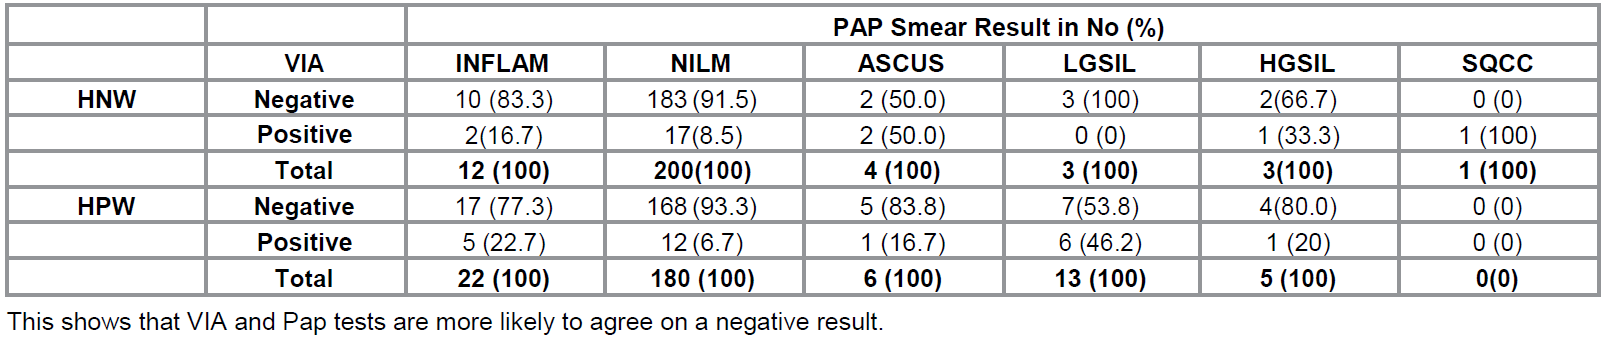 : Distribution of VIA results in relation to Pap